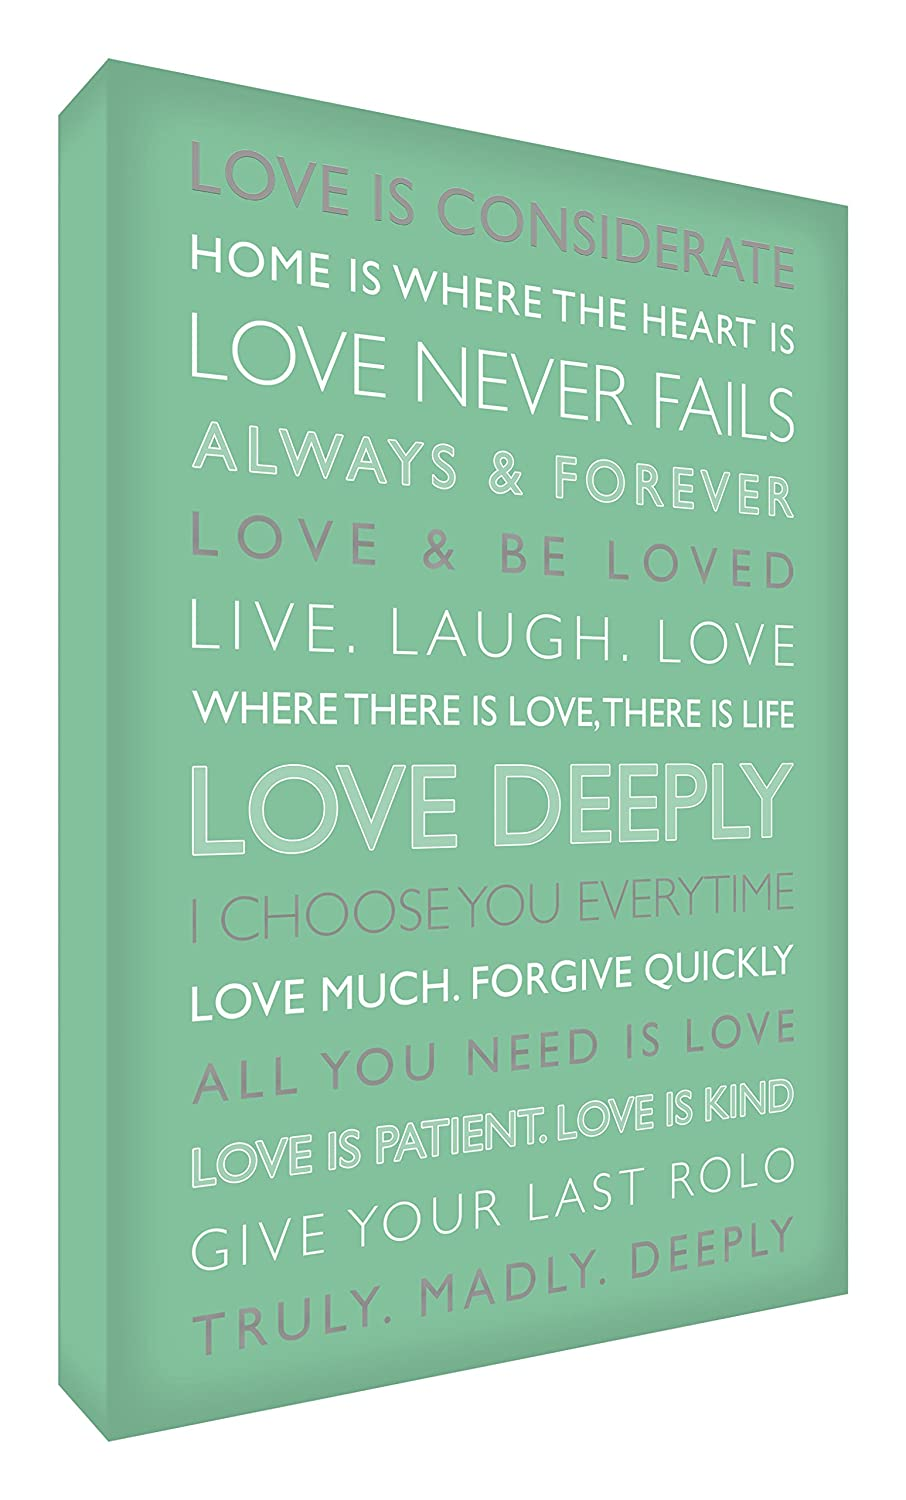 Feel Good Art Love Deeply Gallery Wrapped Box Canvas with Solid Front Panel from the Inspiration Collection (91 x 60 x 4 cm, X-Large, Sky Blue) LVDP2436-23/NV